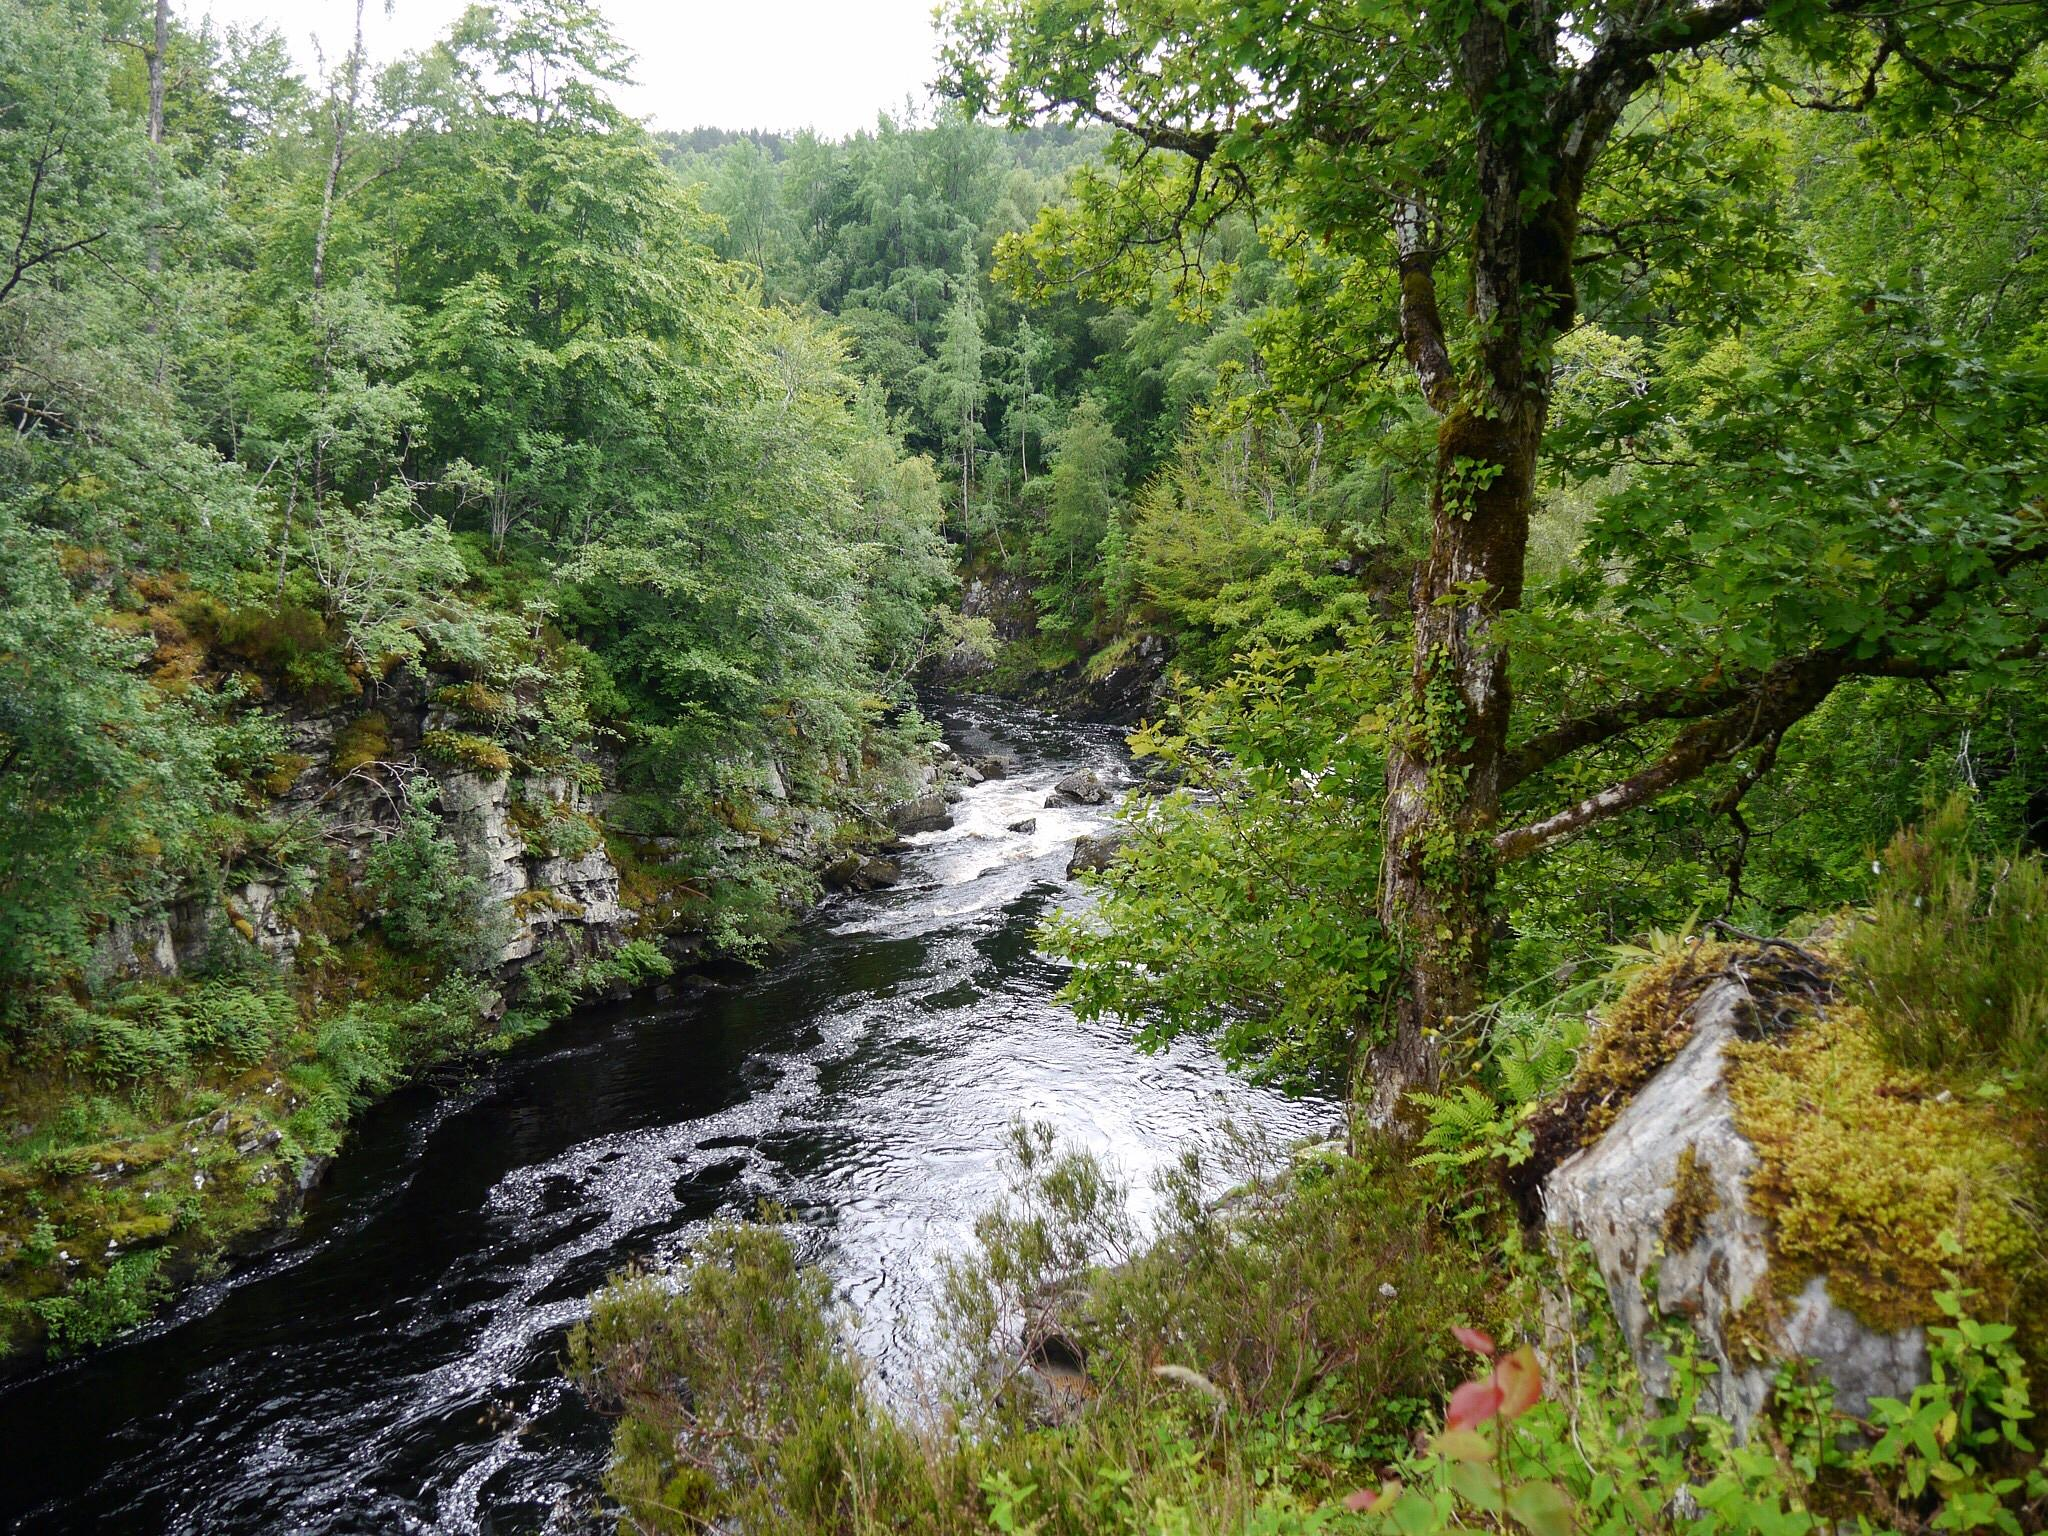 Blackwater river by GeorgeABooth